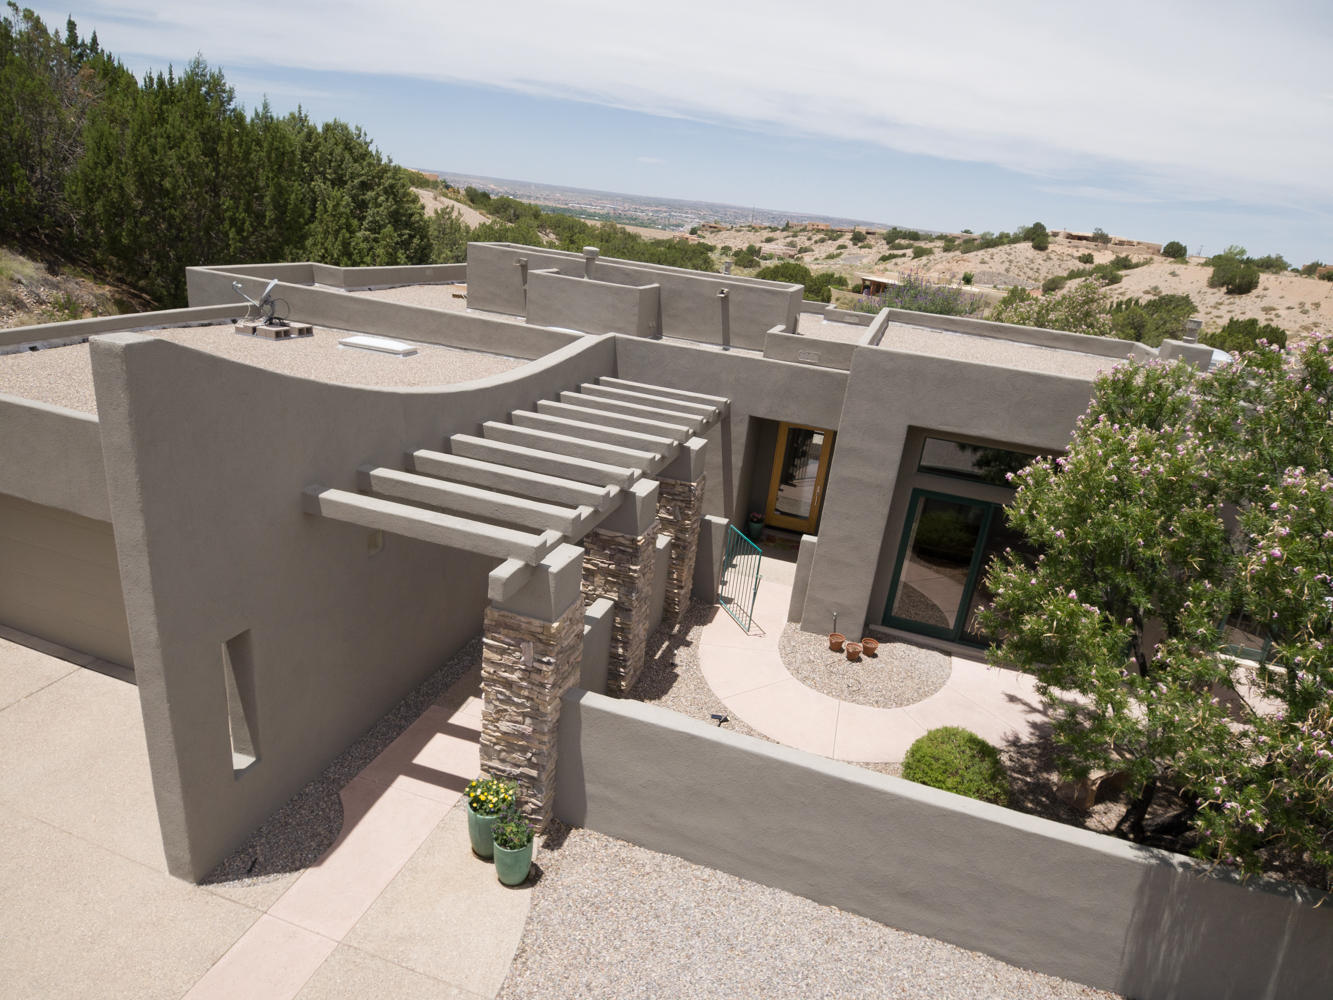 Exquisite Custom Contemporary w/ Spectacular Sandia Mountain Views!! Every detail of this incredible home has been well thought-out & designed! Natural stone columns lead to the welcoming courtyard as you enter this warm contemporary retreat featuring a half barrel ceiling in gallery/hallway; nichos; ledges; quality casement & clerestory windows; raised ceilings; & more! Remodeled kitchen w/new Corian counters & glass tile backsplash in May 2020, beautiful cabinets; new S/S appliances Nov 2019! Owner's Suite w/private courtyard; spa like bath & 2 way fireplace. Home re-stuccoed w/synthetic stucco Nov 2019; New refrig air June 2020; New hot water heater Dec 2019; Seller brought Natural gas to property, no longer on propane! Enjoy the city & mountain views in the tranquil walled courtyard.